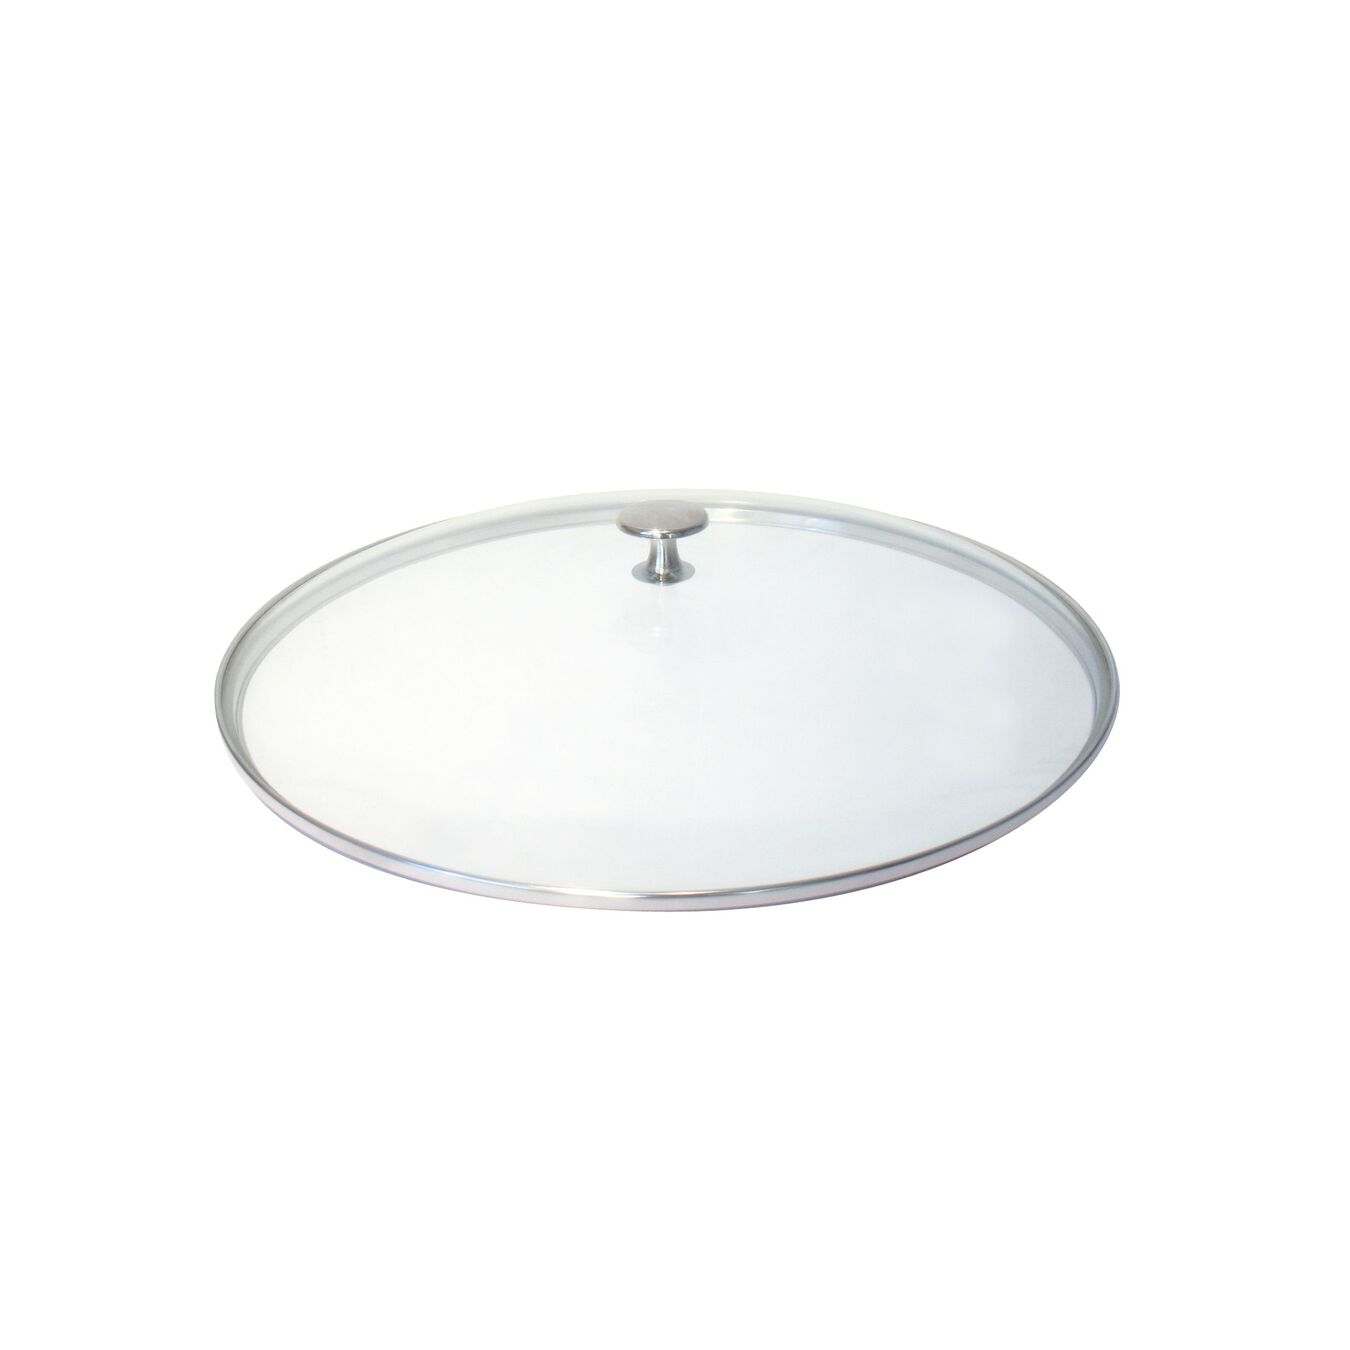 12-inch Glass Lid,,large 1